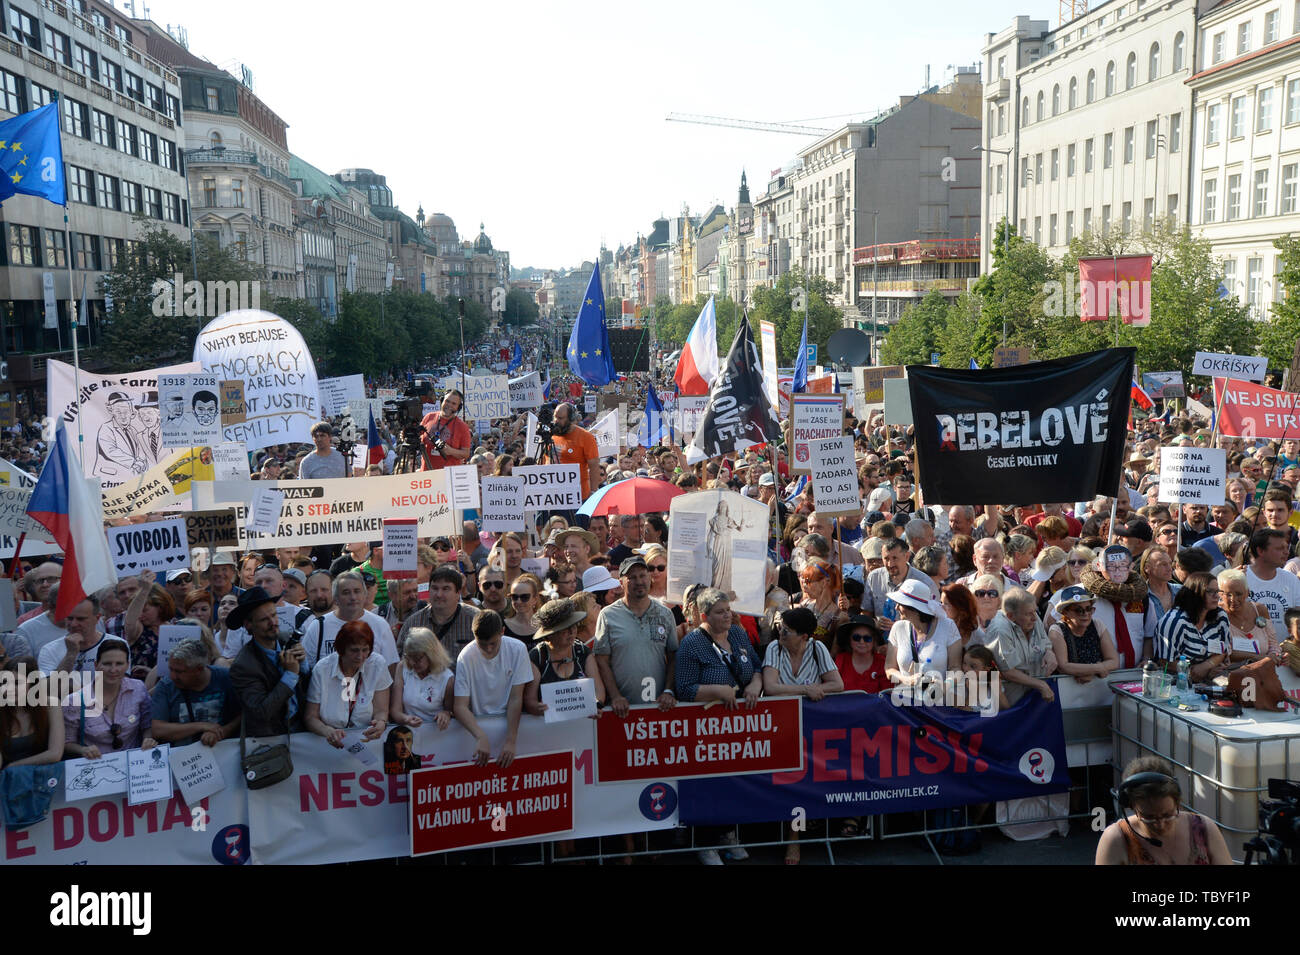 Prague, Czech Republic. 04th June, 2019. People joined another demonstration for Justice Minister Marie Benesova's resignation and also Prime Minister Andrej Babis's resignation, held by Million Moments for Democracy NGO, on the Wenceslas Square in Prague, Czech Republic, on June 4, 2019. Credit: Katerina Sulova/CTK Photo/Alamy Live News Stock Photo